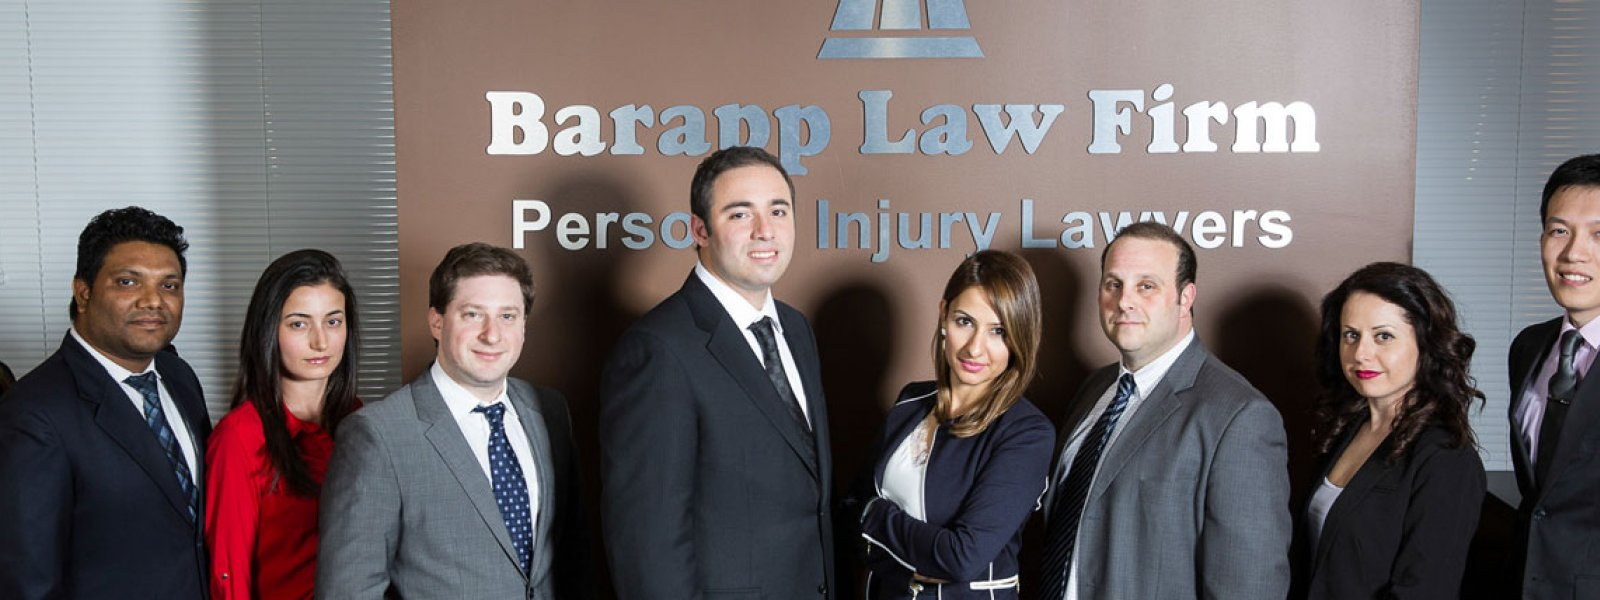 Barapp Law   👍 - 4.4/5 - 48 Reviews   1000 Finch Ave. West